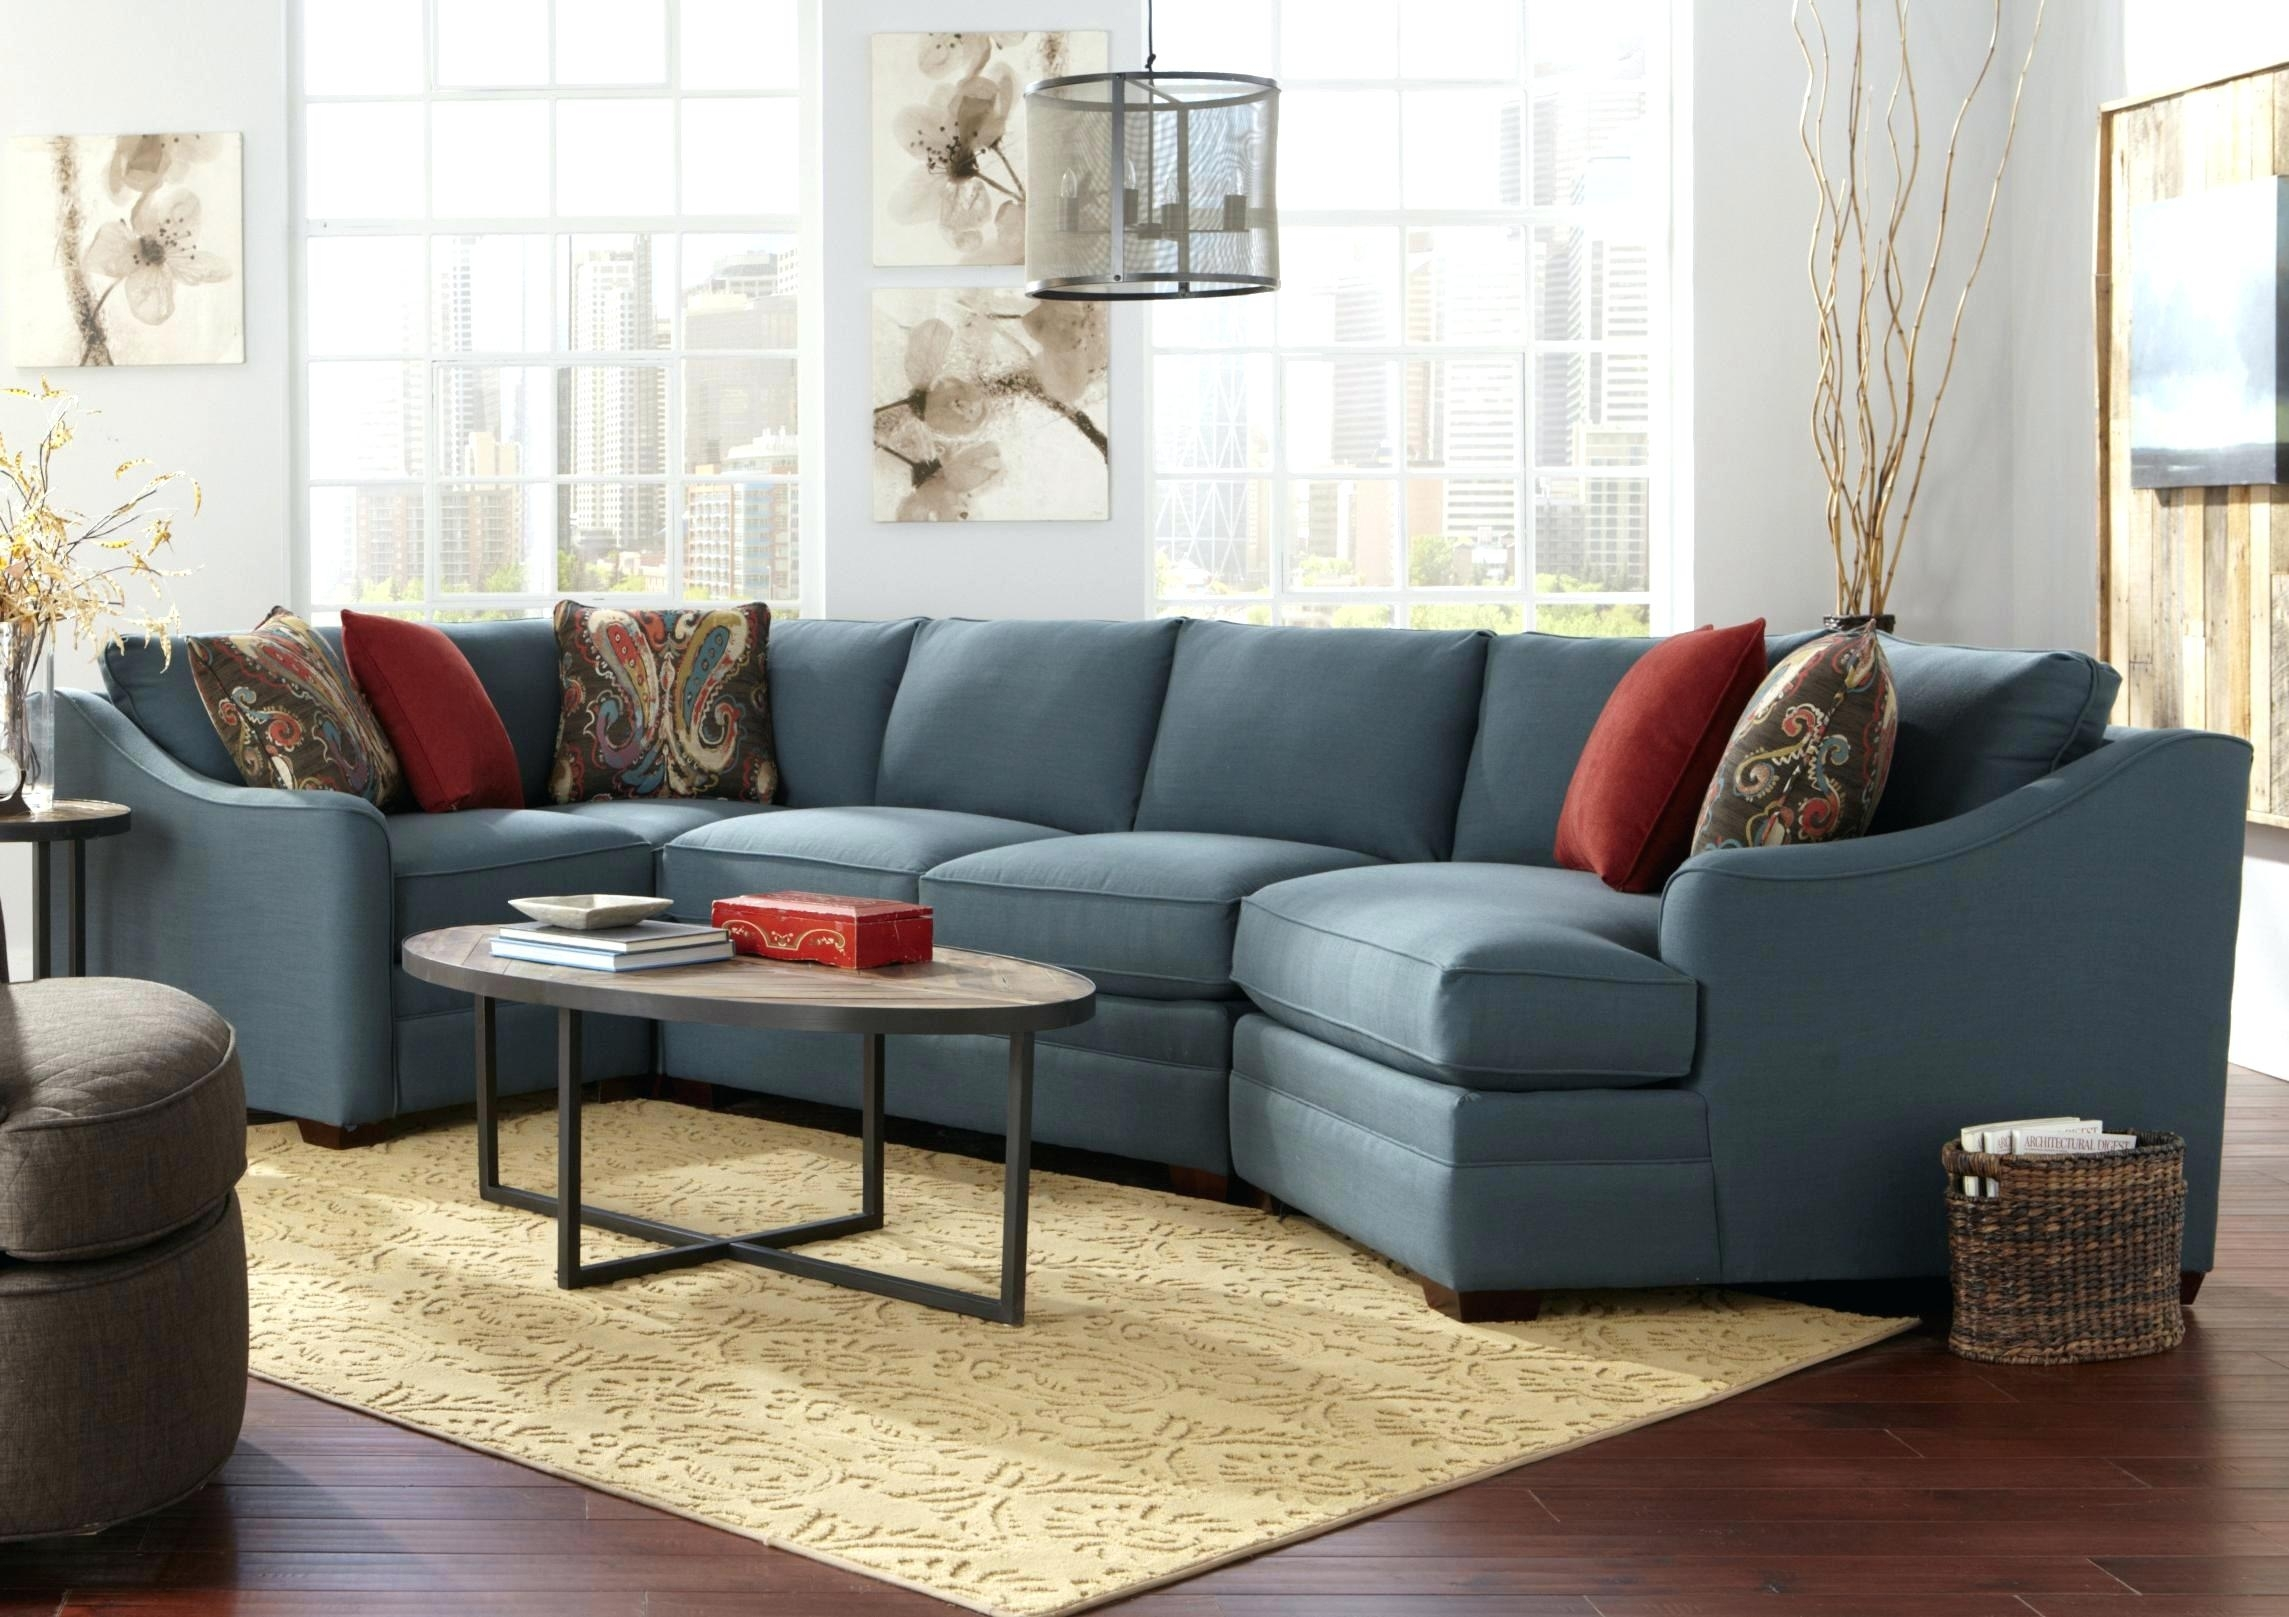 Idea Sectional Couch With Cuddler For Custom Collection Four Piece B Within Sectional Sofas With Cuddler Chaise (Image 5 of 10)